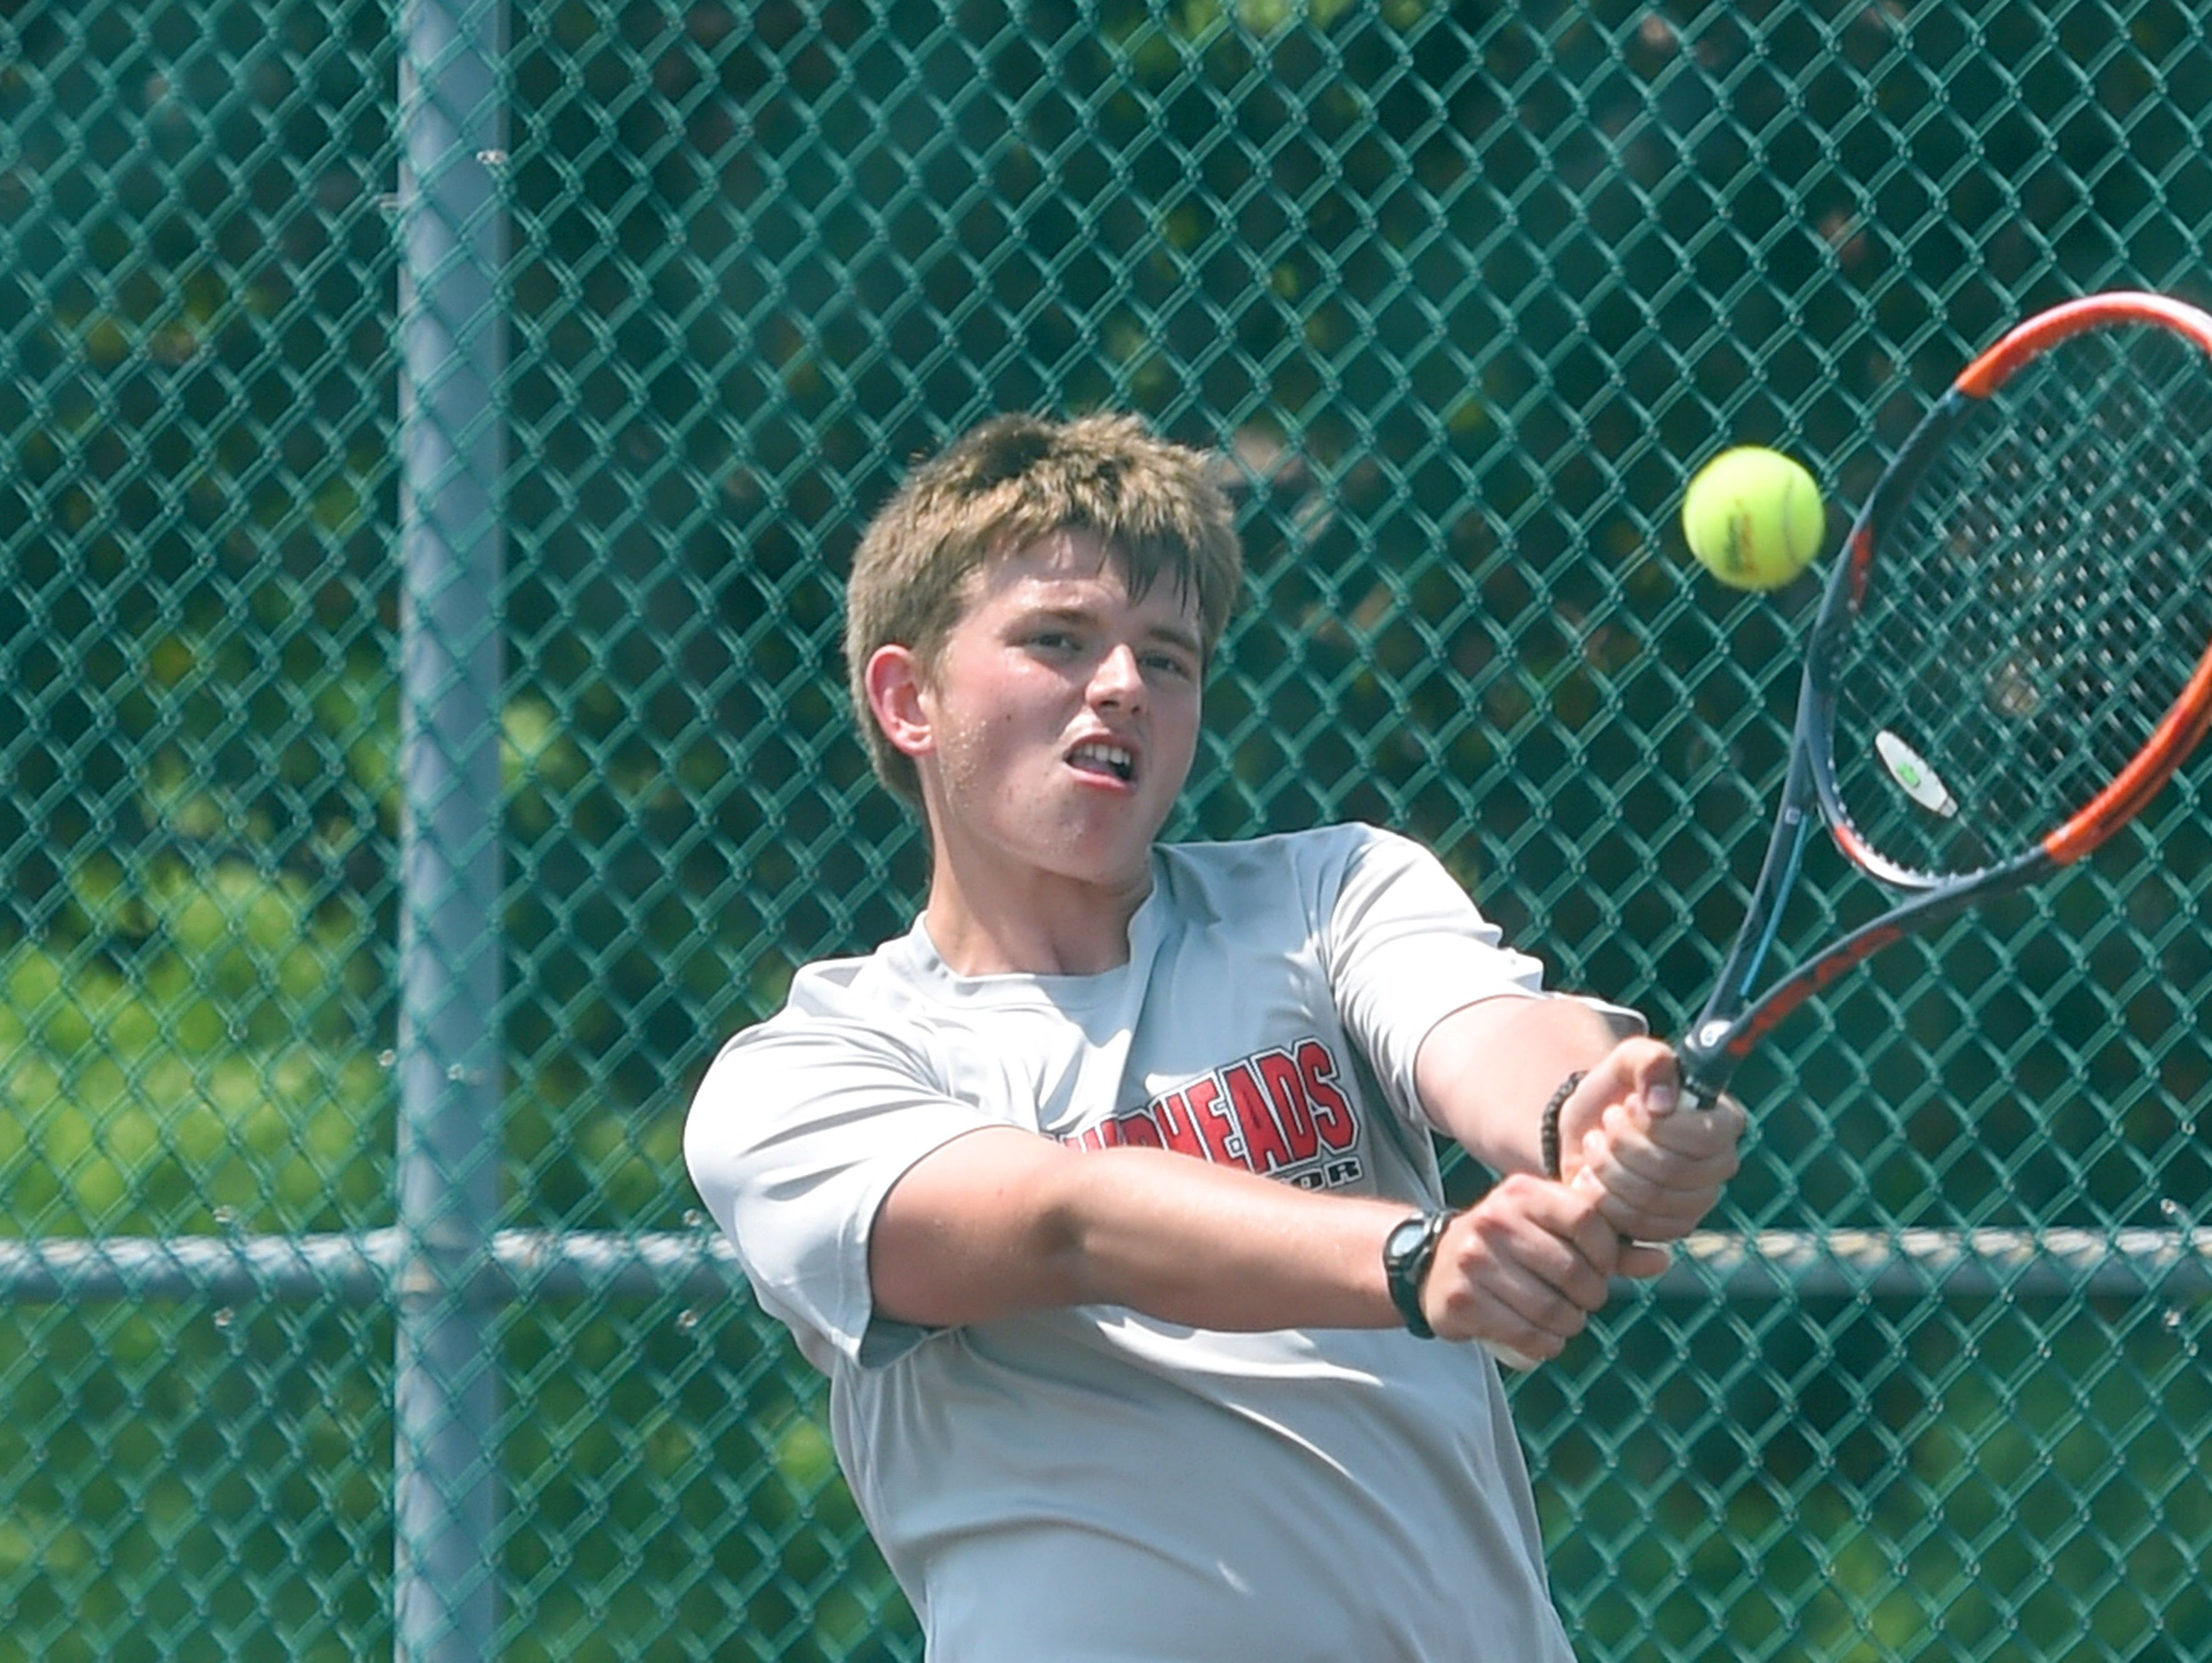 Riverheads' Eric Alanko returns the ball in a match against Robert E. Lee's Mark Silwoski during the Conference 36 tennis tournament in Fishersville on Thursday, May 13, 2016.